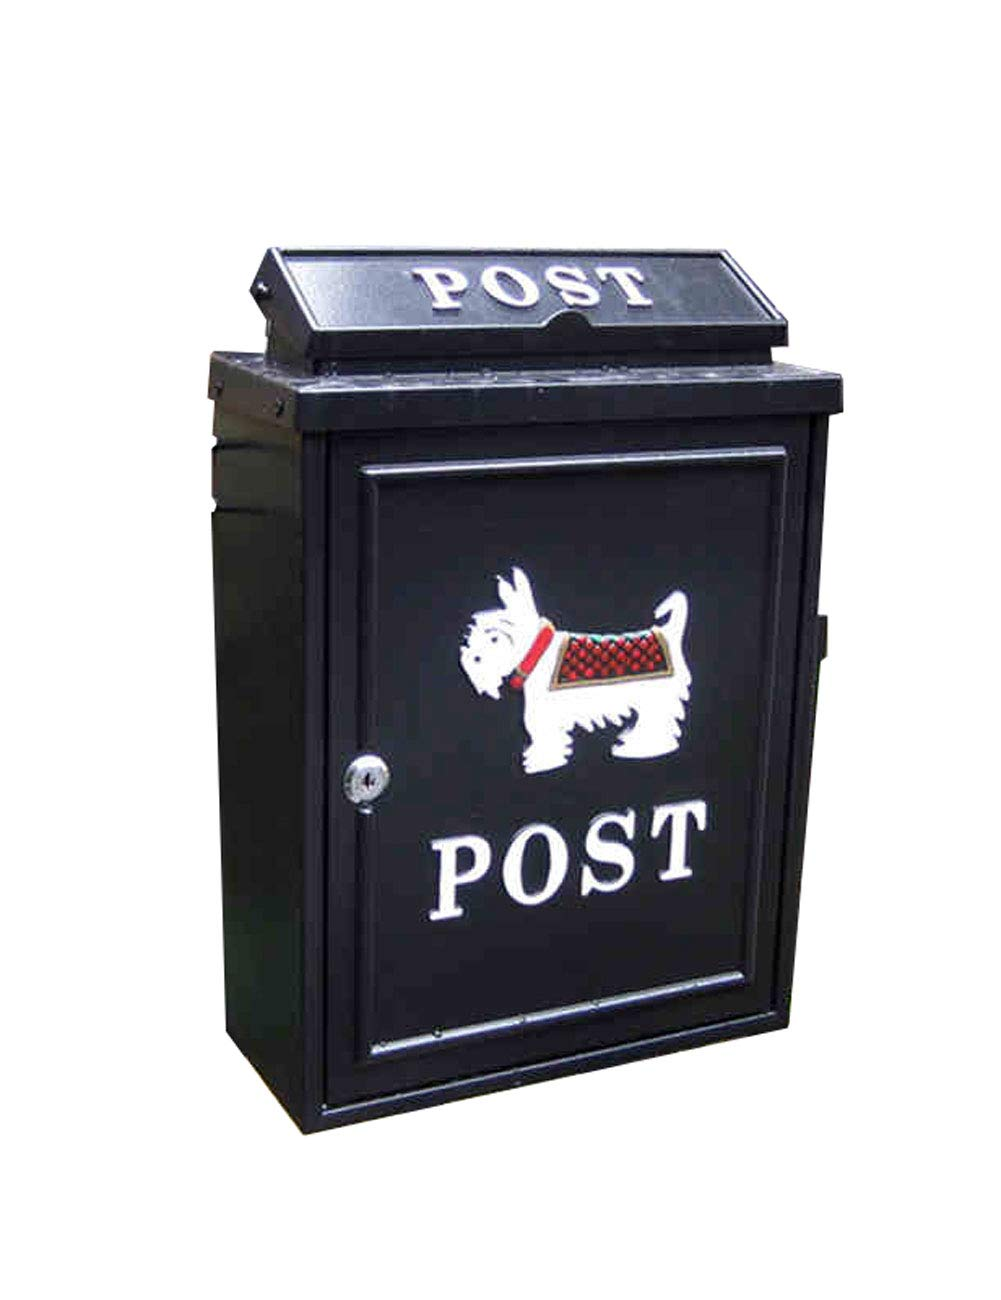 European Mailbox Outdoor Waterproof Wall-Mounted Decoration with Lock Postbox Printing and Painting Process Cast Iron Craft for Outdoor Place Letter Box